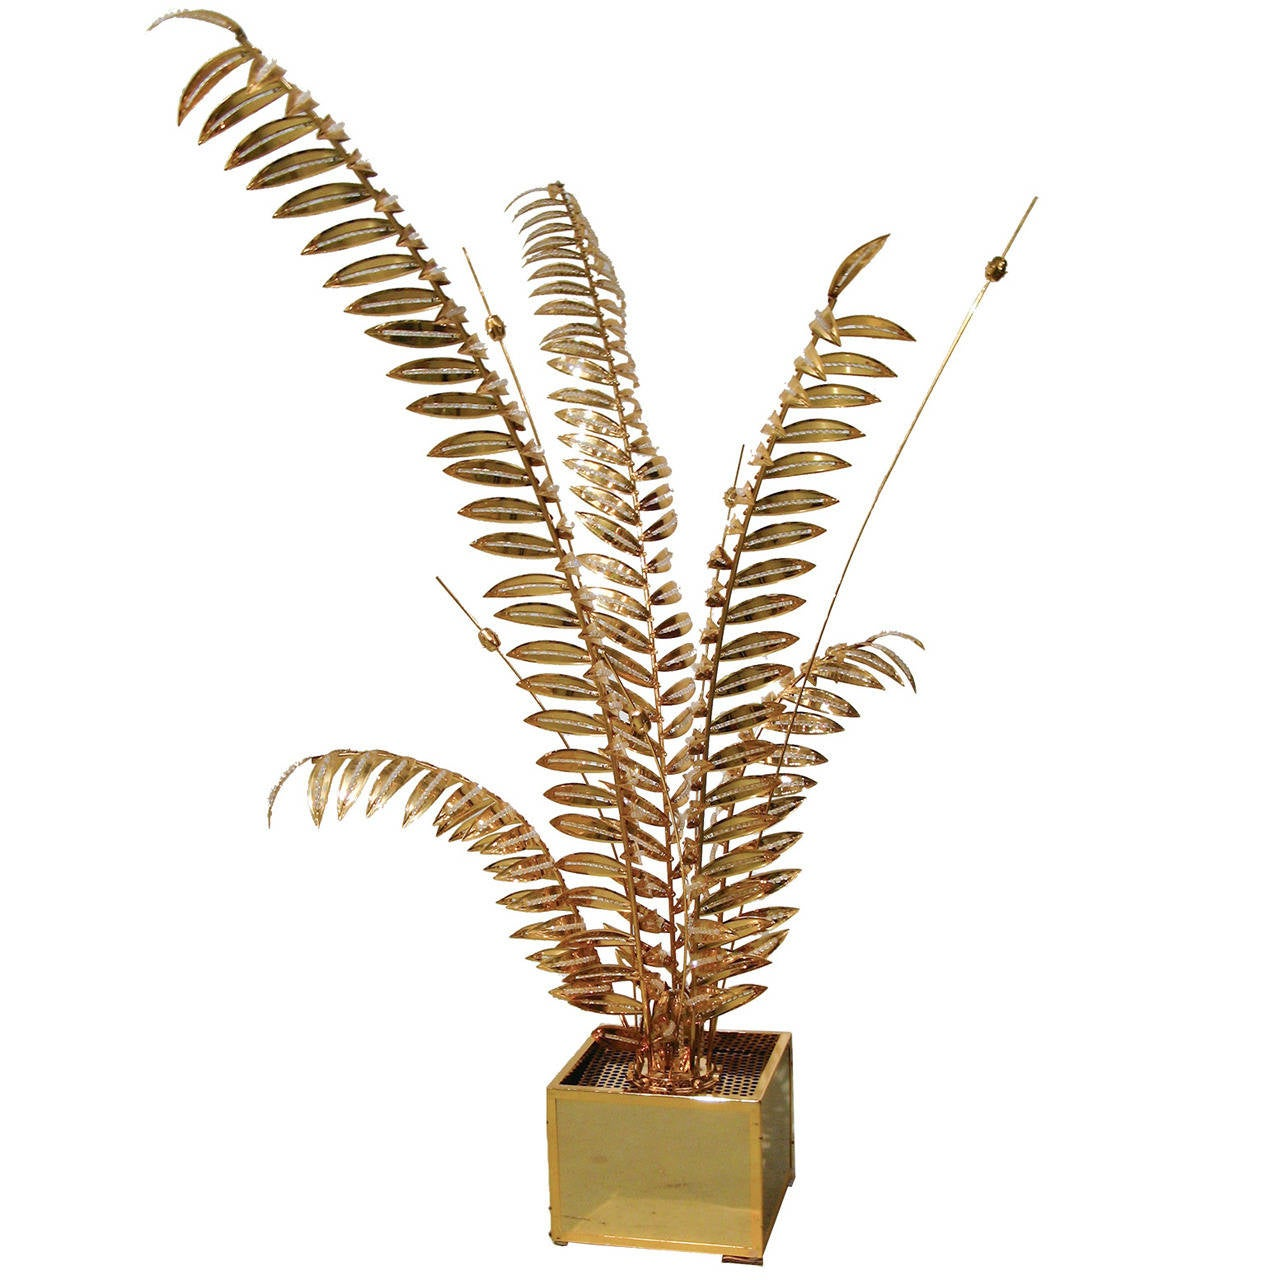 Brass Floor Lamp with Stylized Palm Tree Branches Embellished with Crystals 1